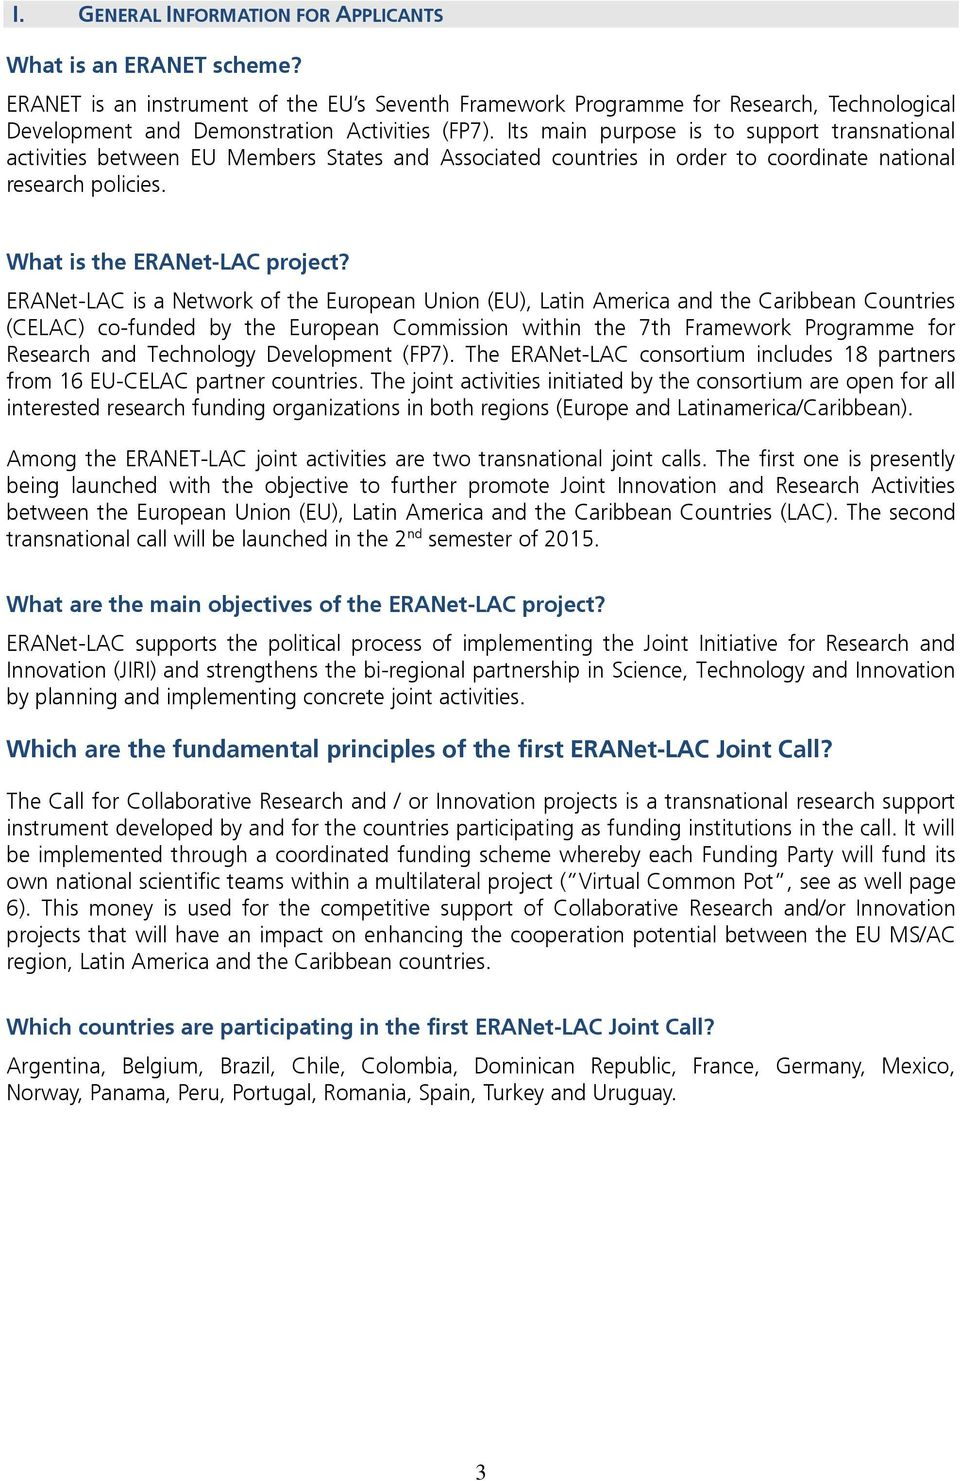 Its main purpose is to support transnational activities between EU Members States and Associated countries in order to coordinate national research policies. What is the ERANet-LAC project?